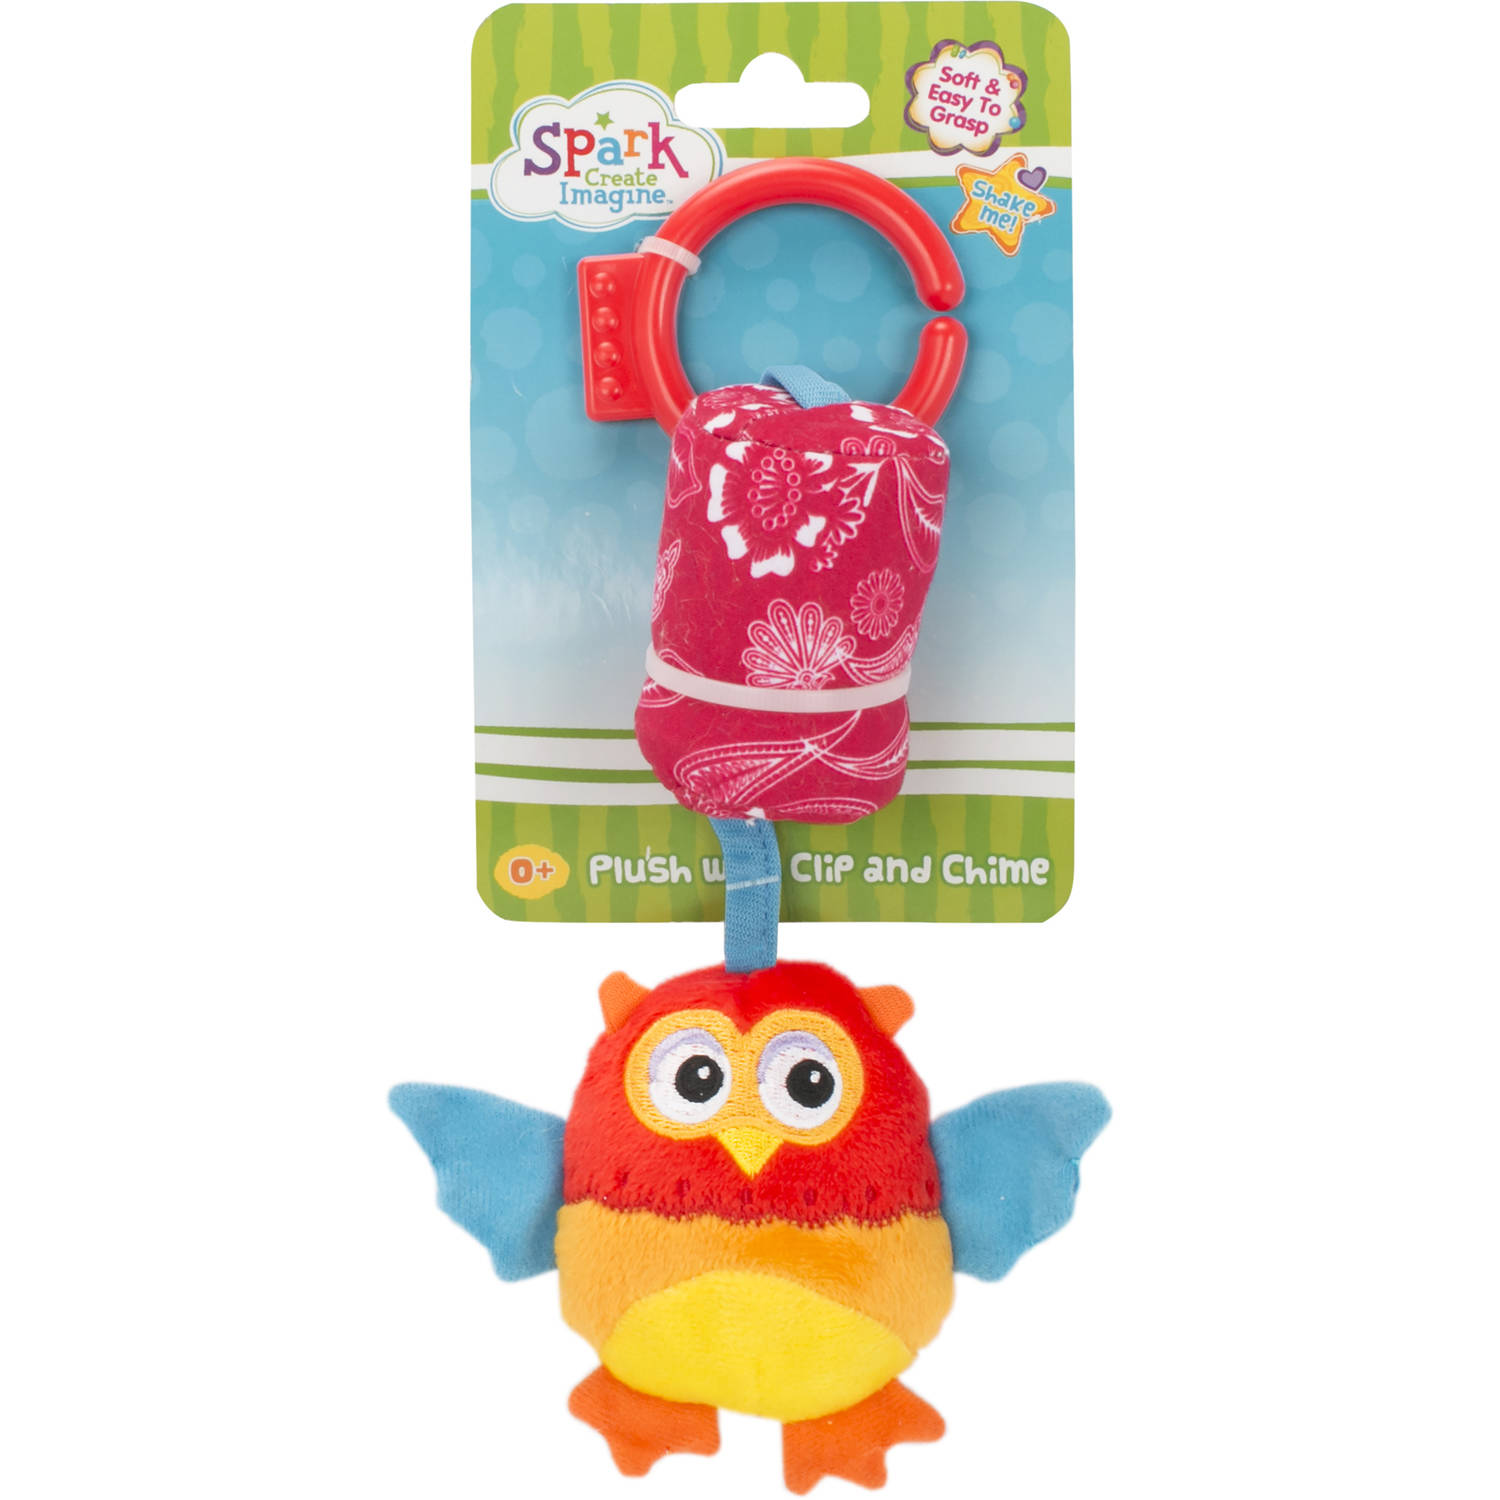 Spark Create Imagine Plush with Clip and Chime, Owl